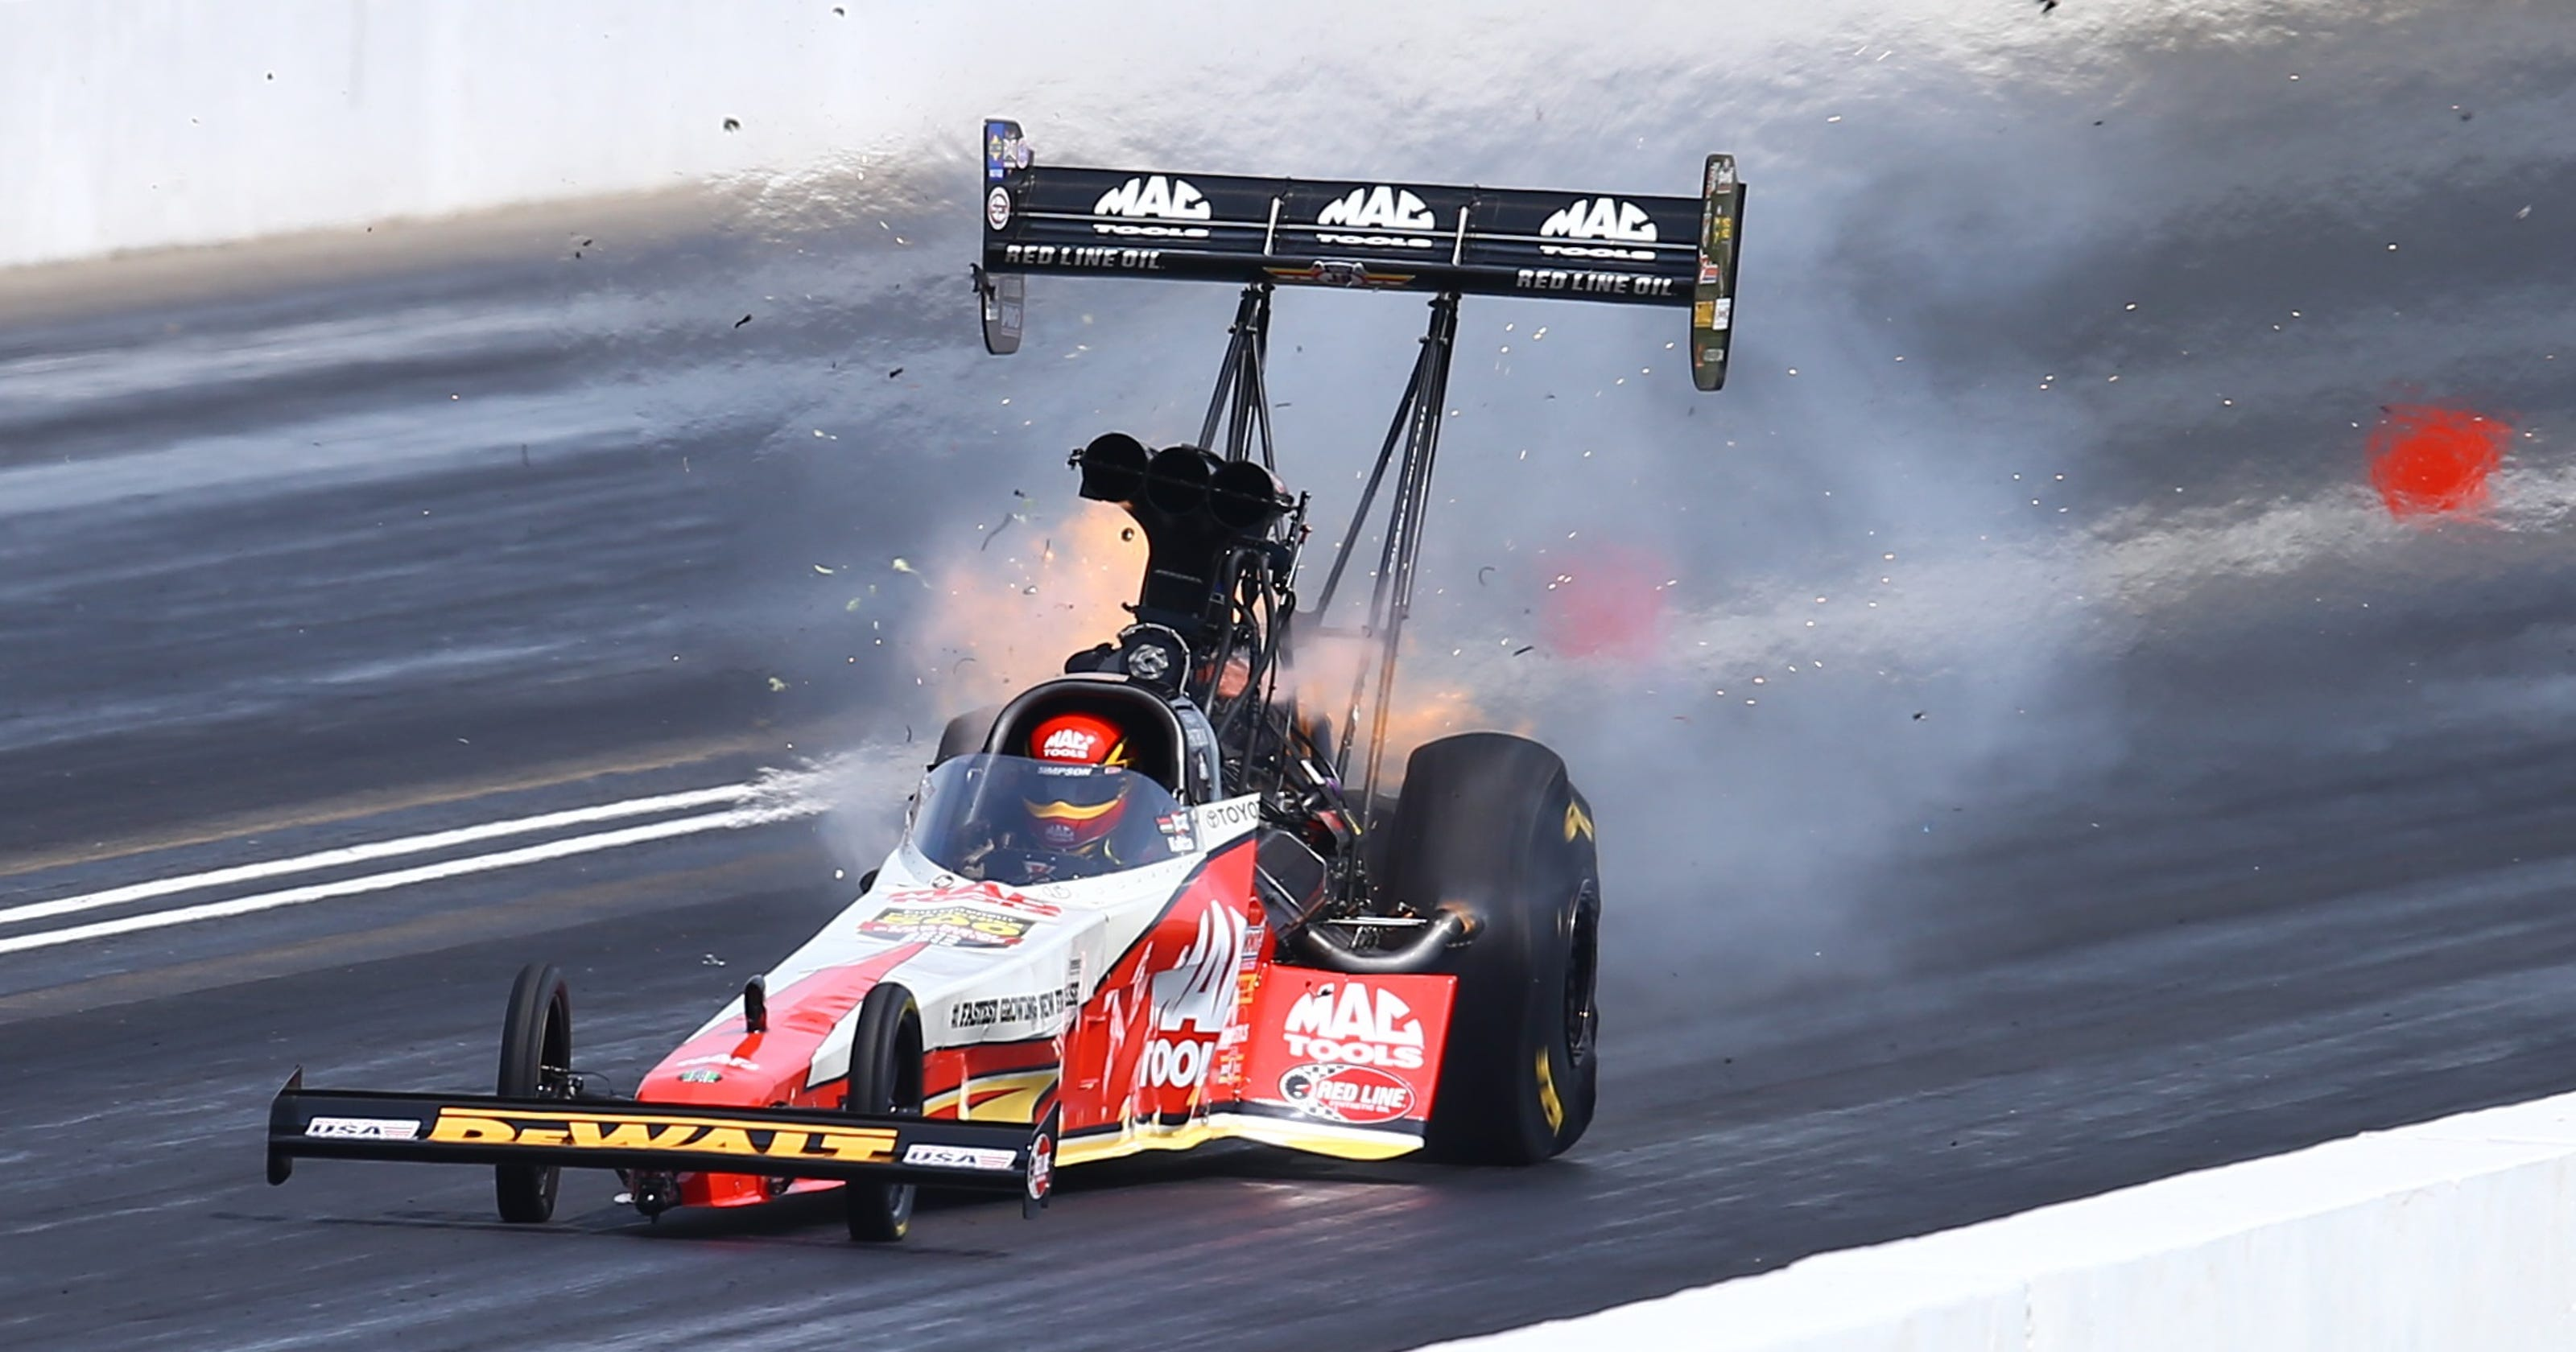 Doug Kalitta races to third straight NHRA Top Fuel victory